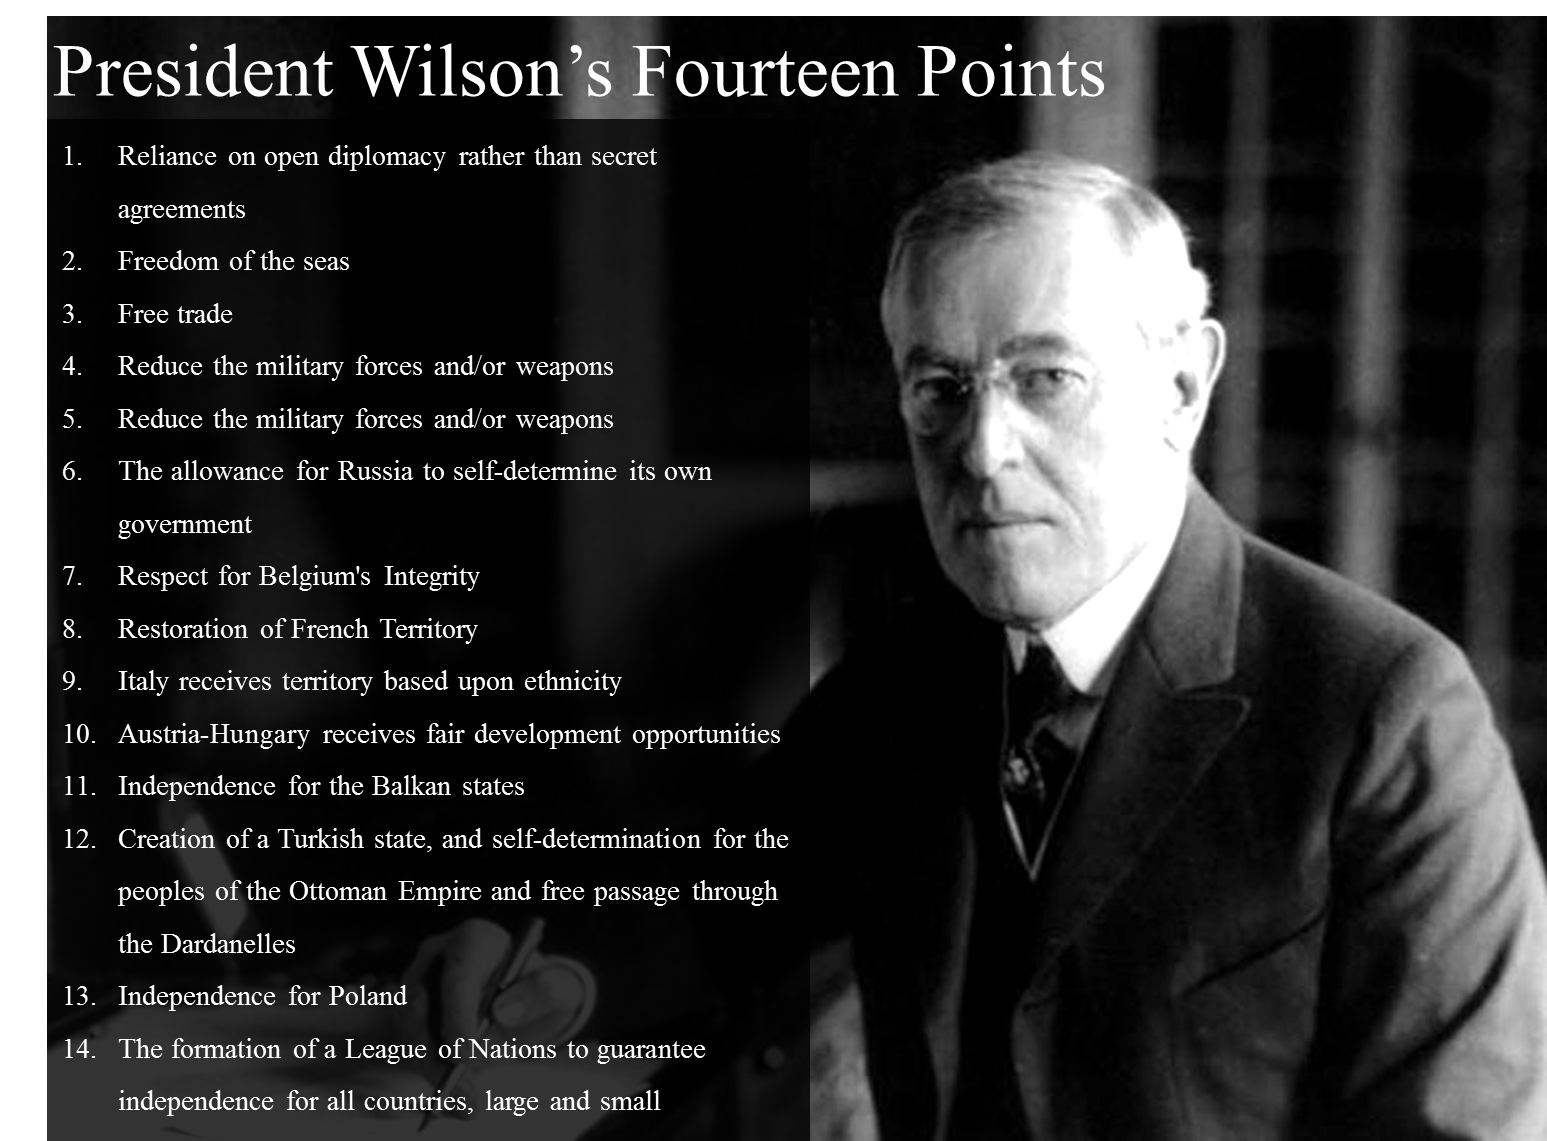 woodrow wilson s points for the st century the center for   woodrow wilsons fourteen points